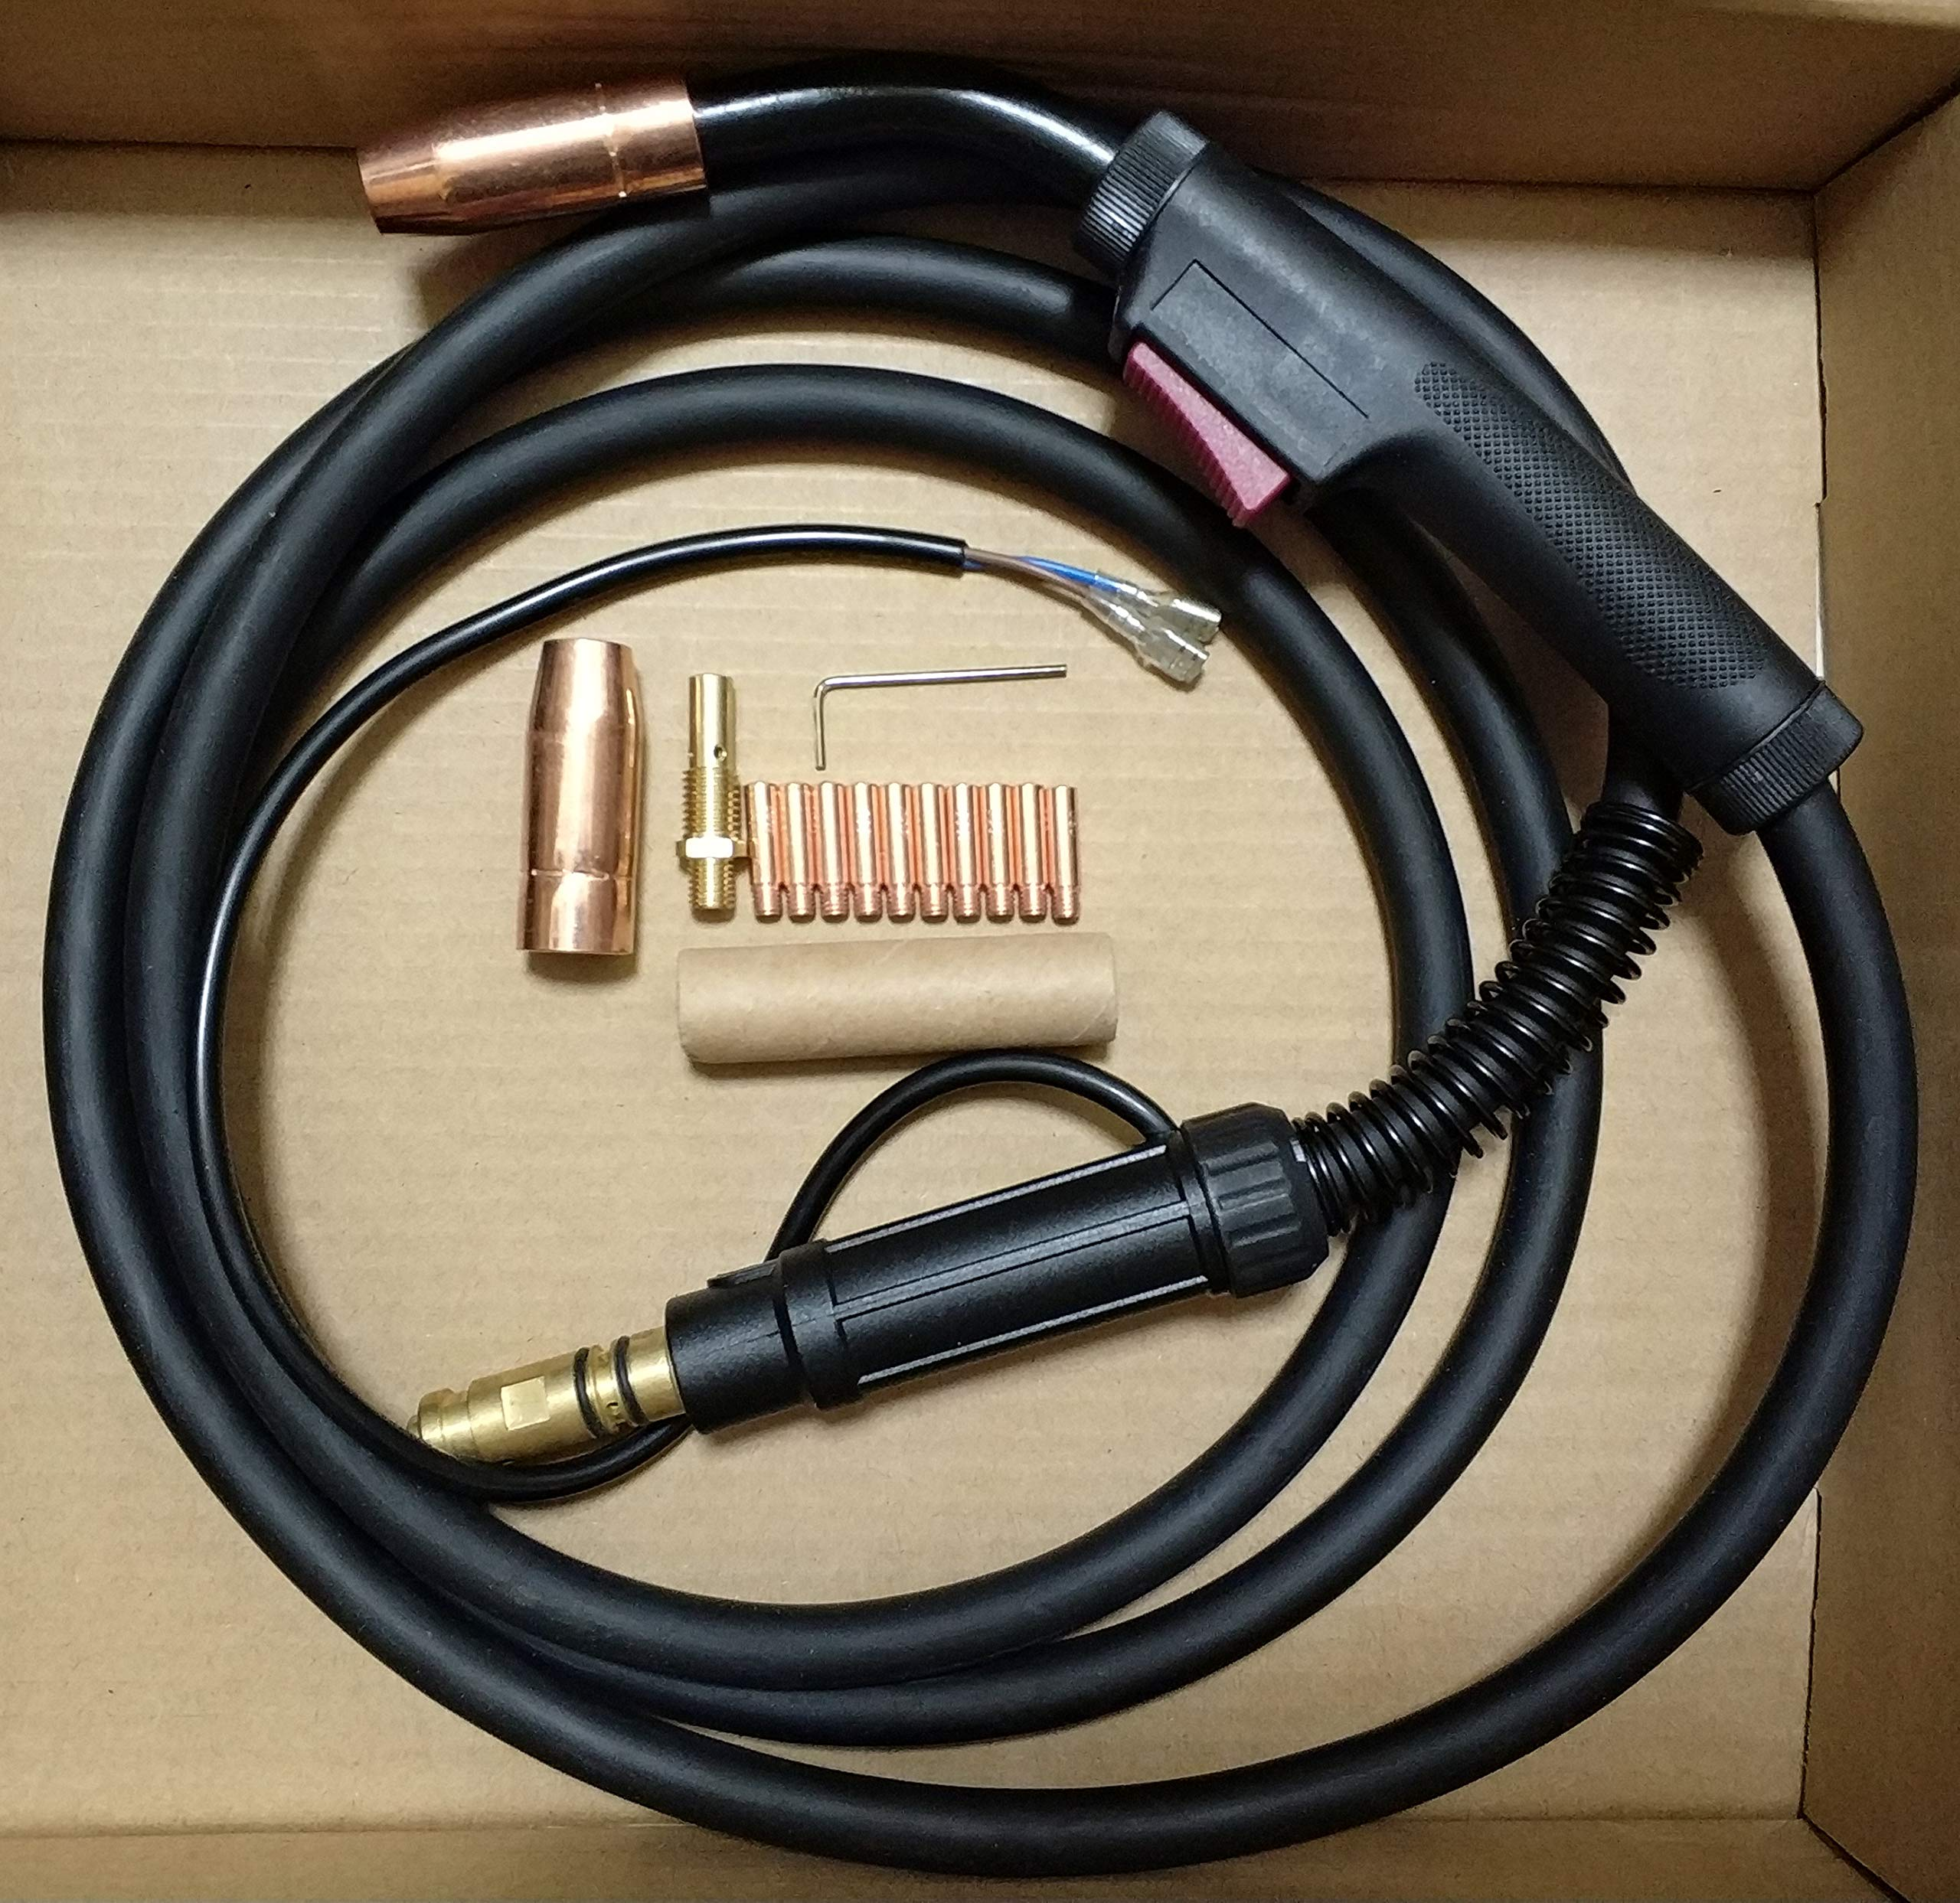 MIG WELDING GUN &TORCH 10' 150AMP replacement for LINCOLN Magnum 100L K530-5 (ETA:5-7 WORK DAYS)